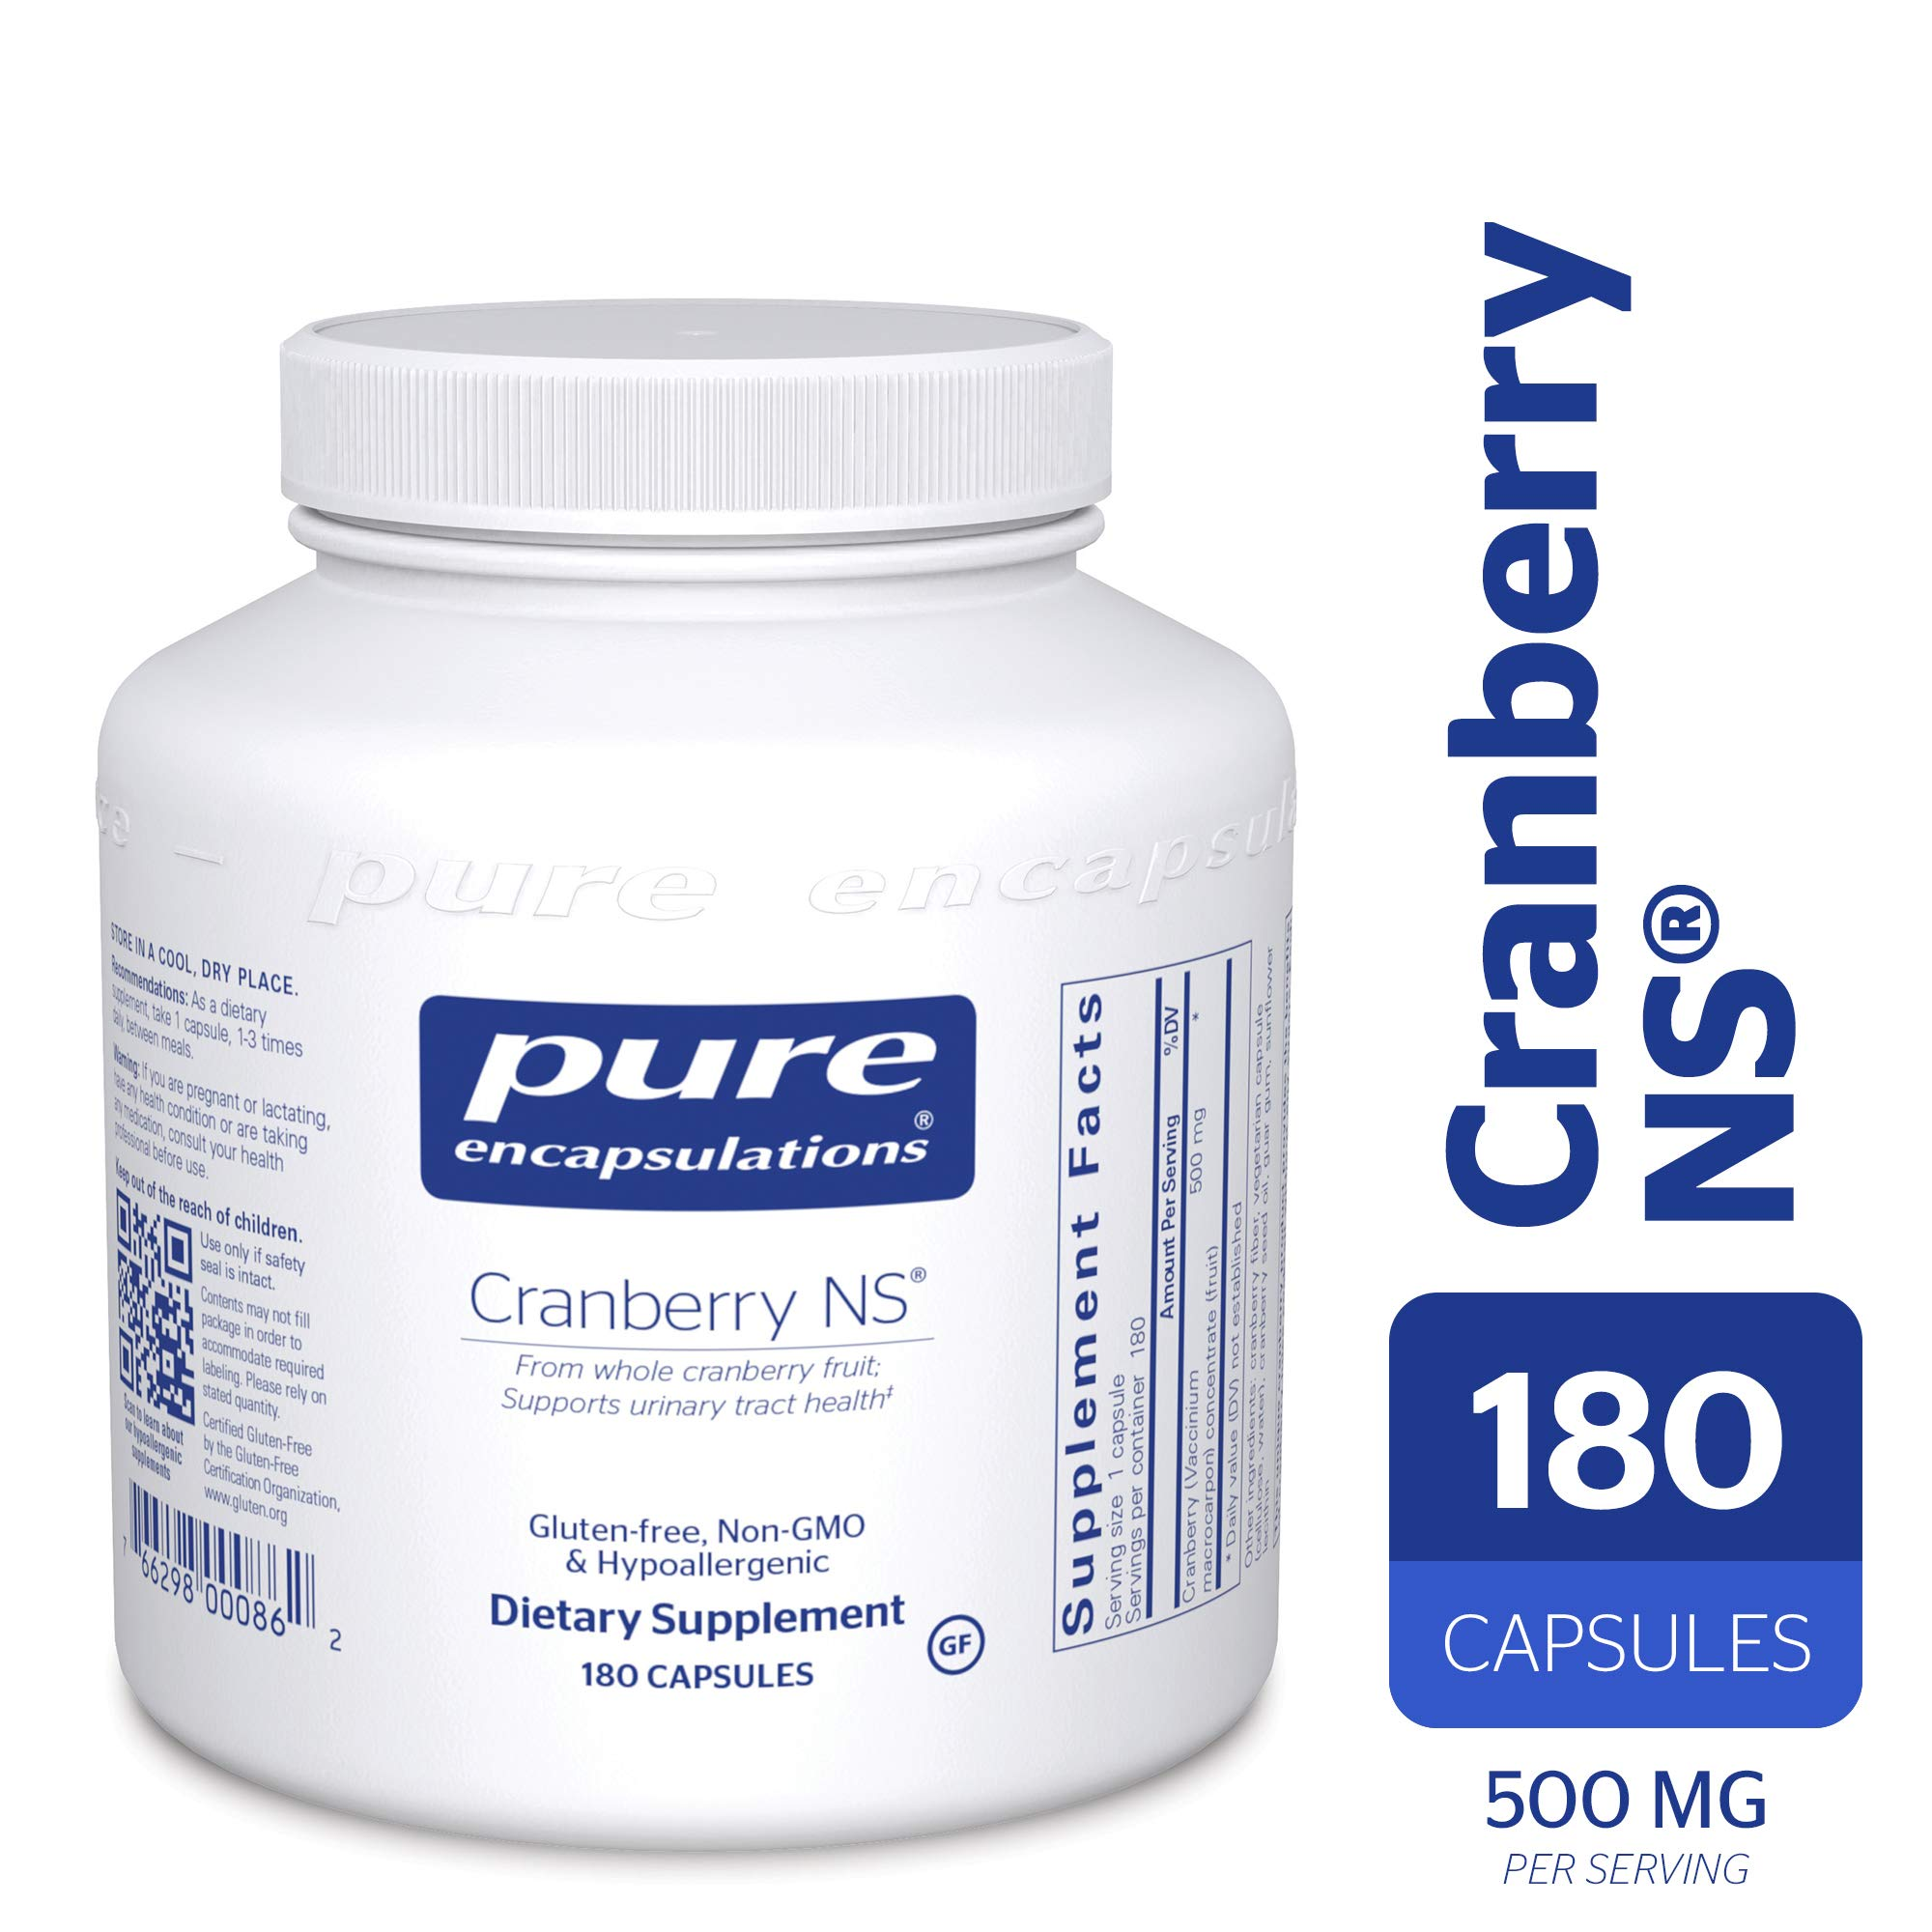 Pure Encapsulations - Cranberry NS - Hypoallergenic Supplement to Support Urinary Tract Health* - 180 Capsules